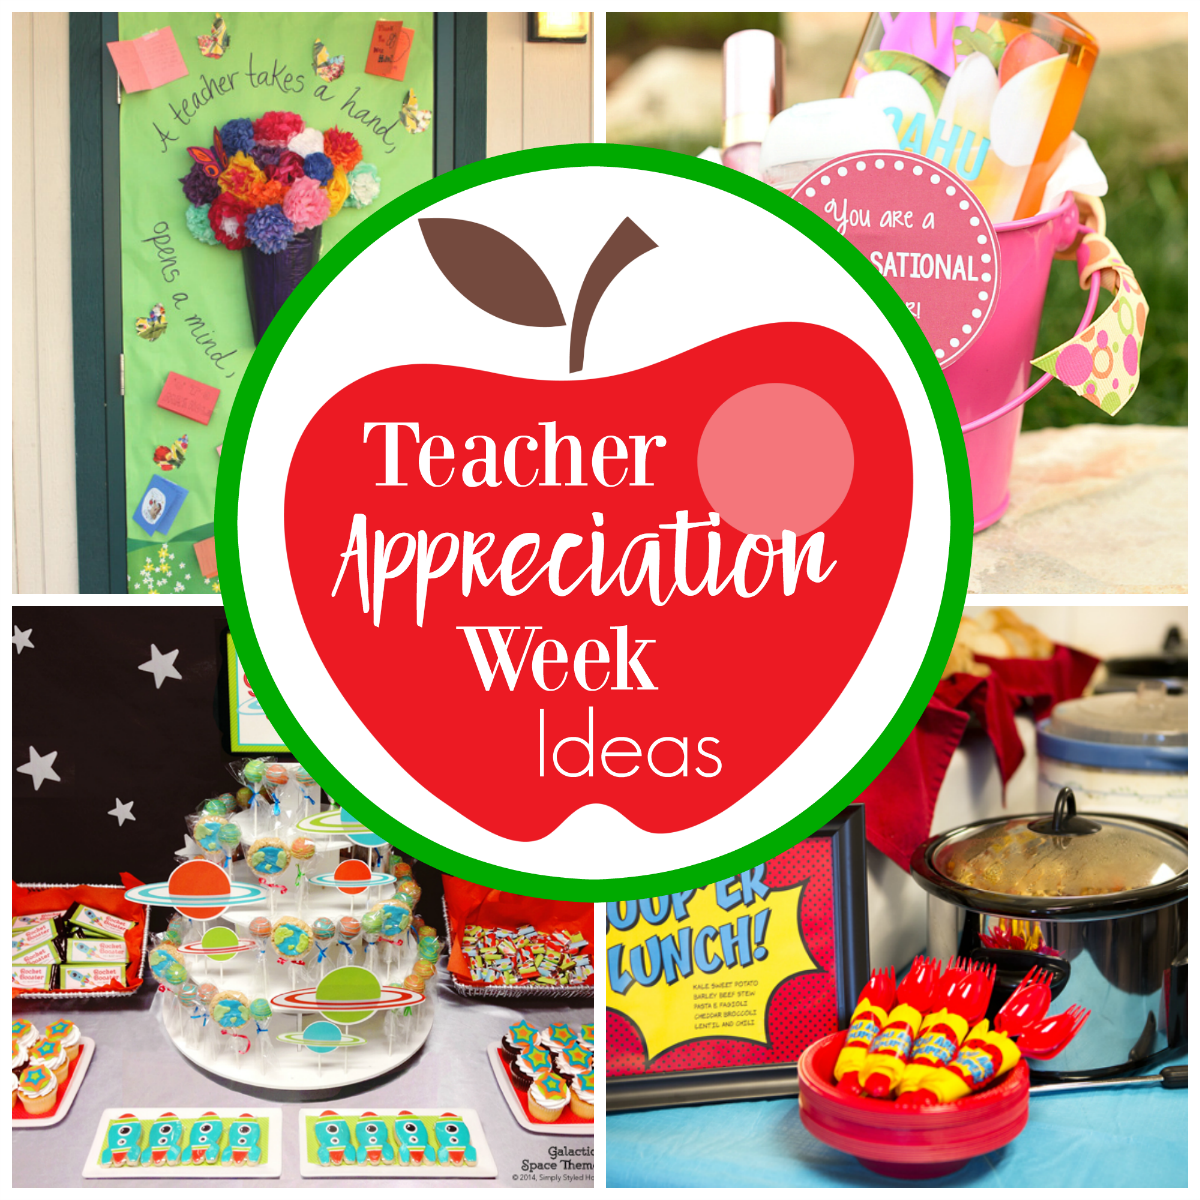 Classroom Ideas For Teacher Appreciation Week ~ Fun teacher appreciation week ideas squared